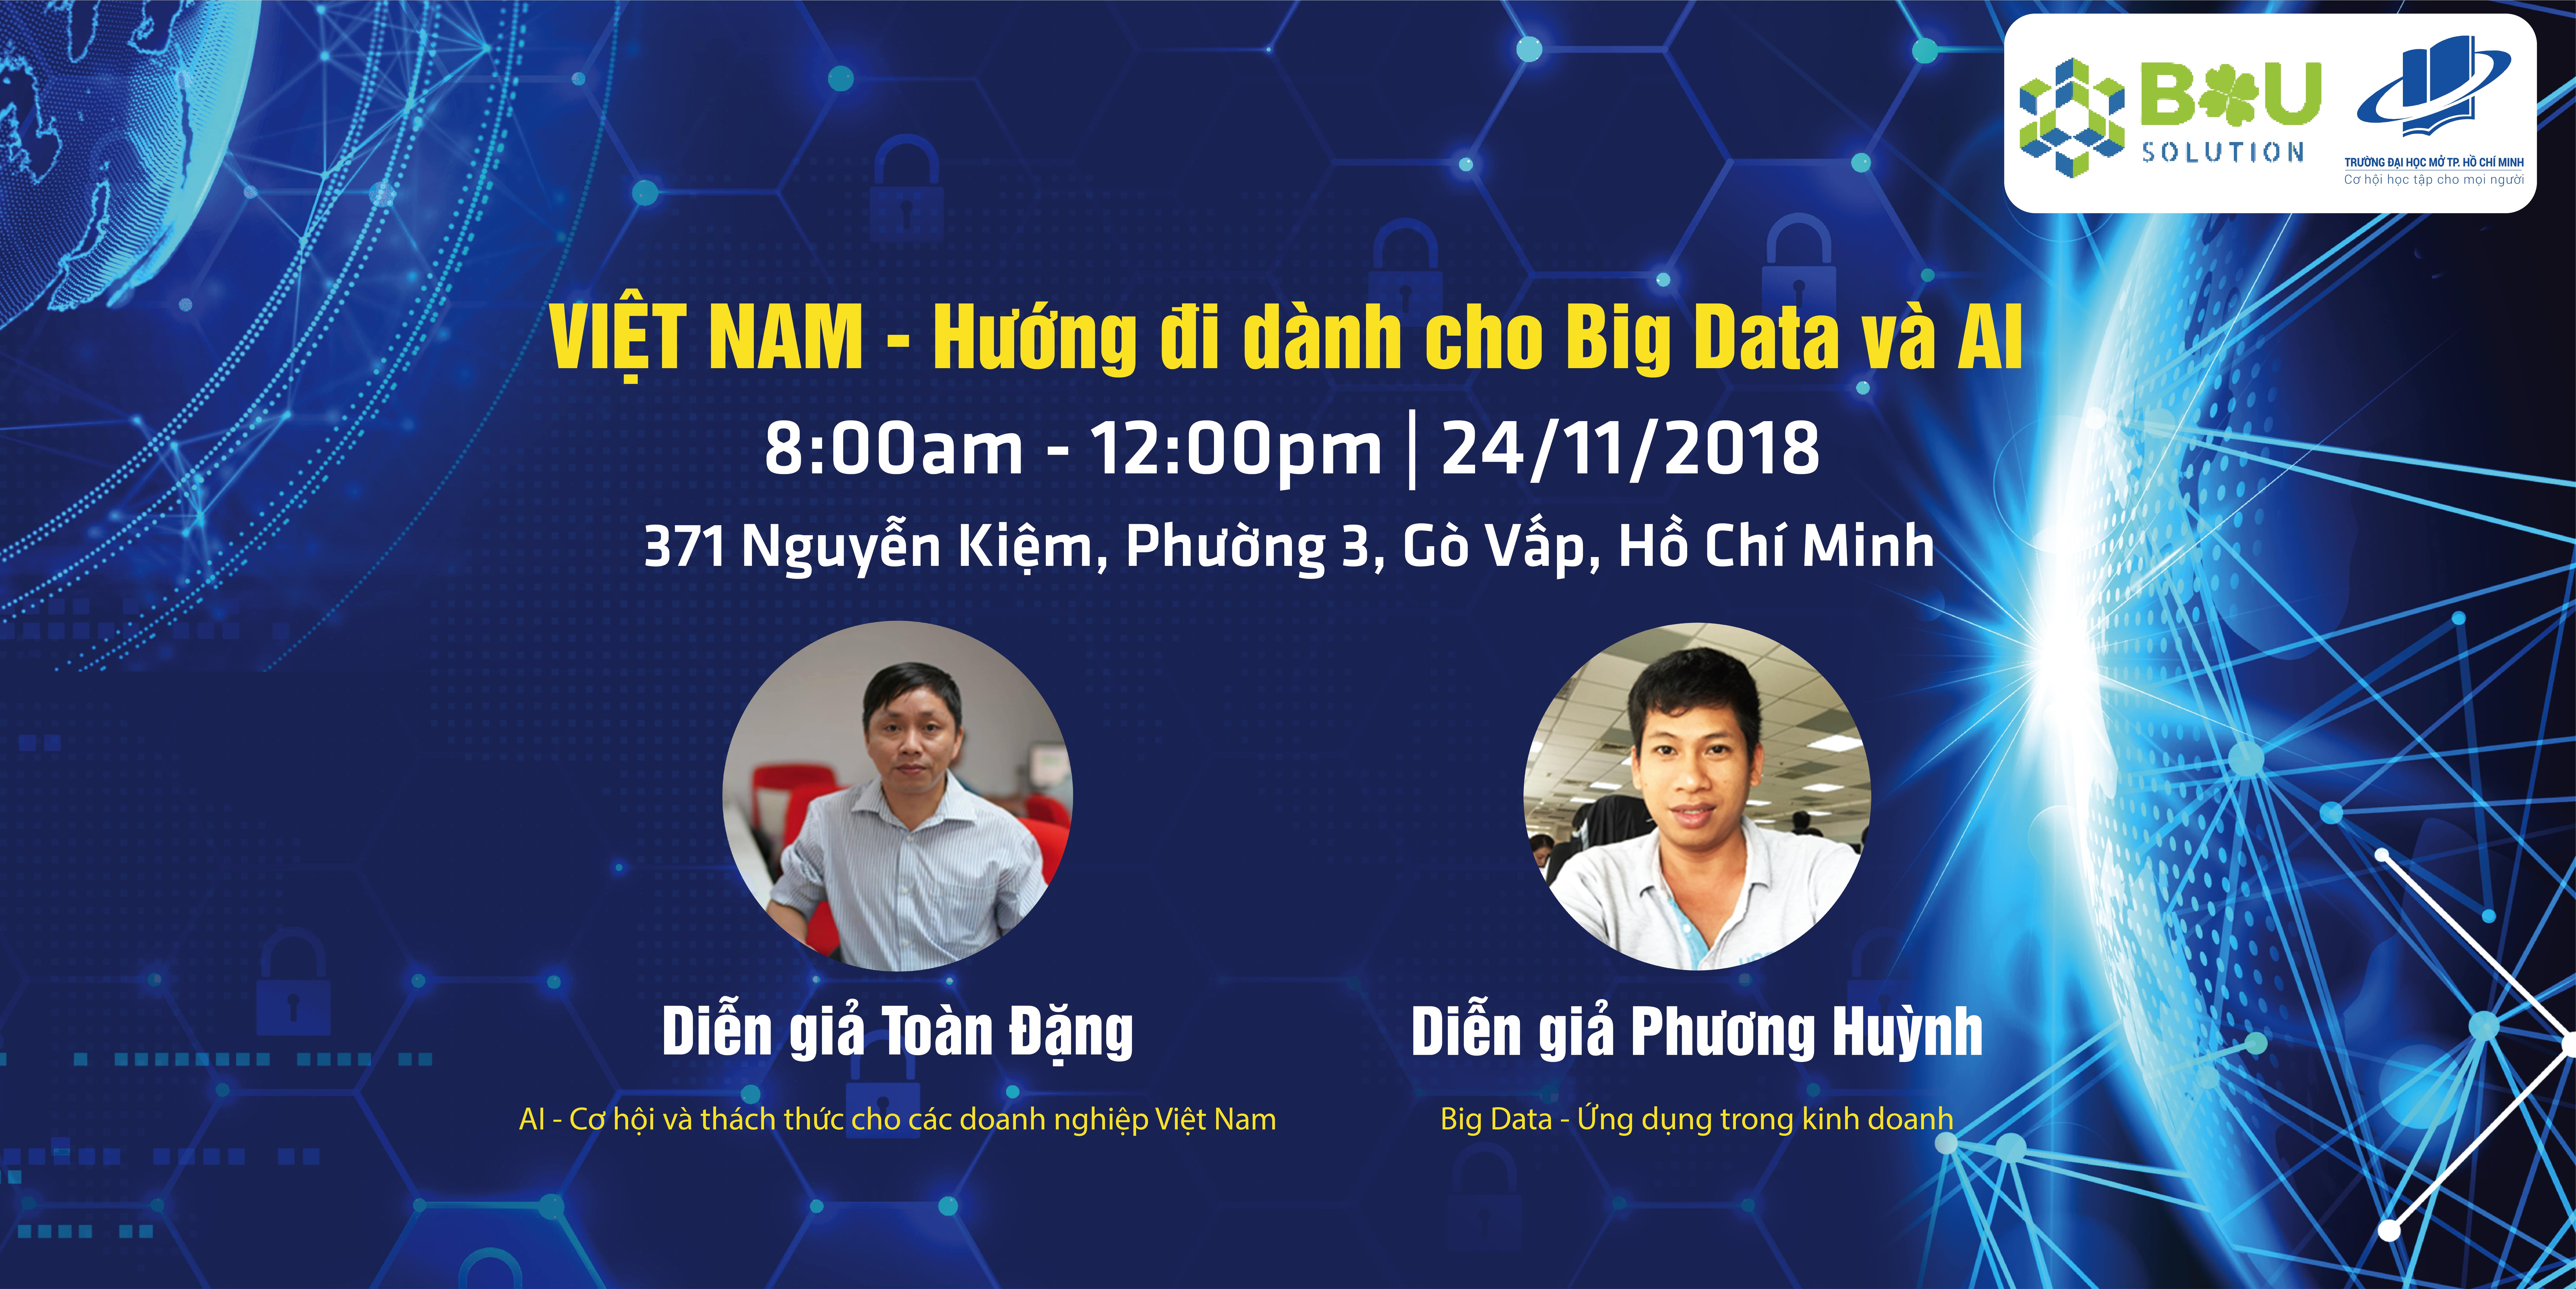 WORKSHOP VIETNAM - Direction for Big Data and AI